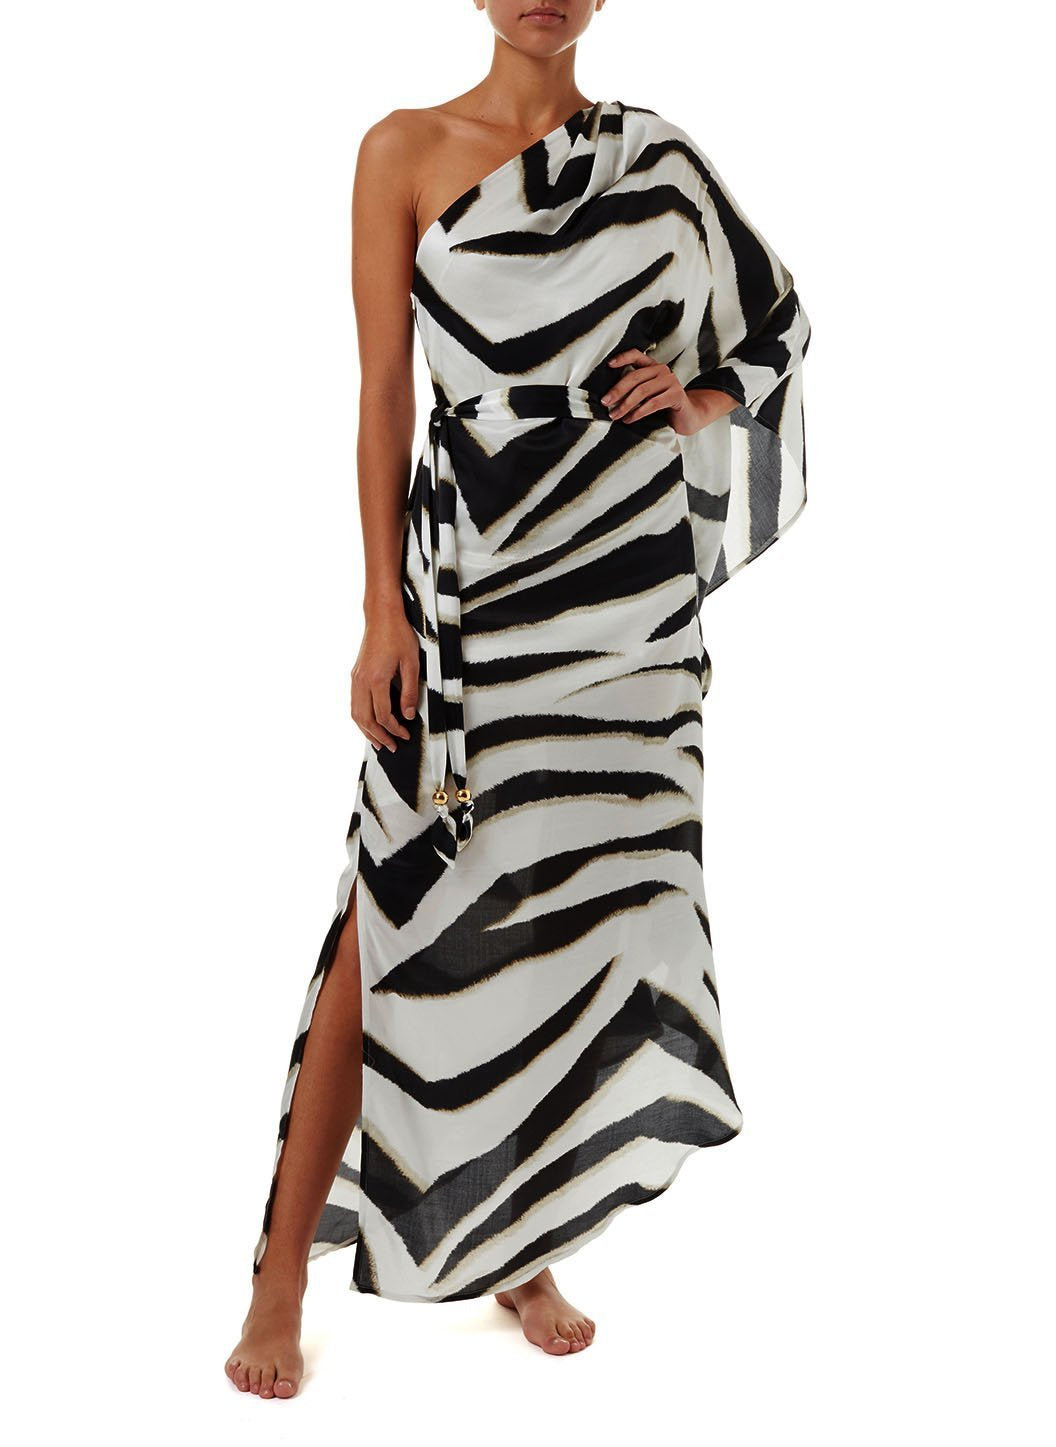 lauren zebra oneshoulder belted floor length dress 2019 F